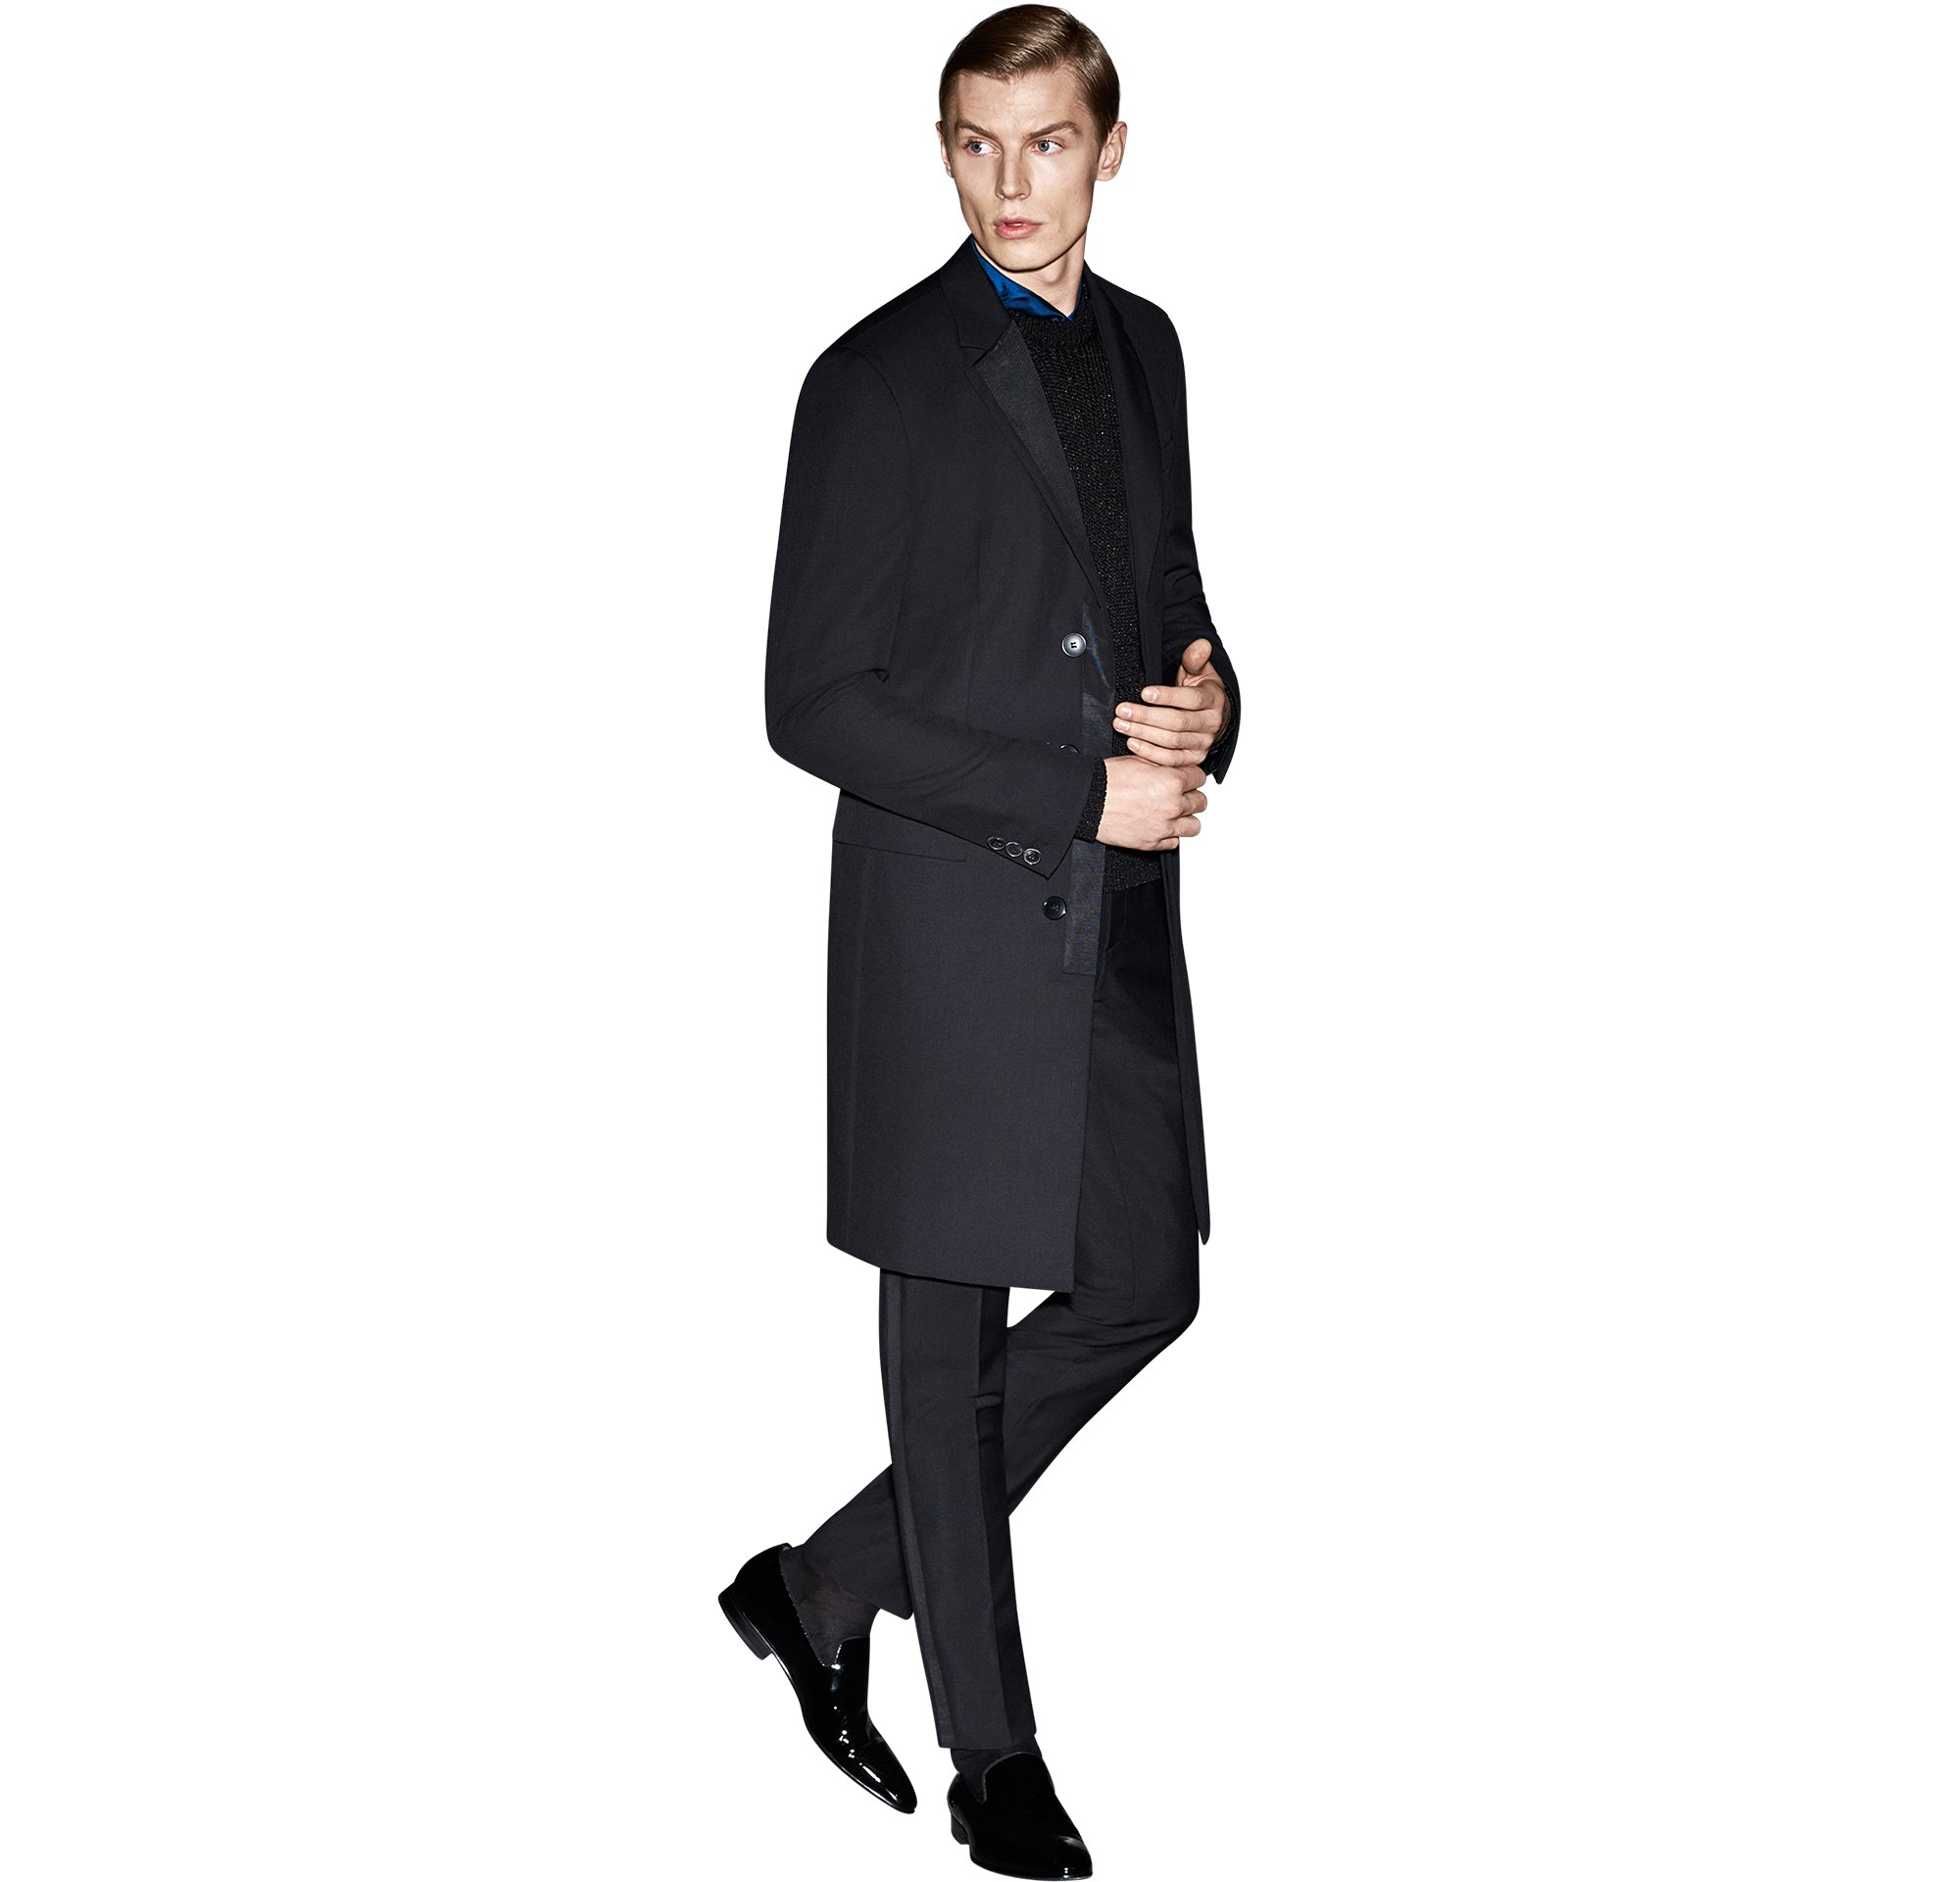 Black coat over black knitwear and blue shirt with black trousers and black shoes by BOSS